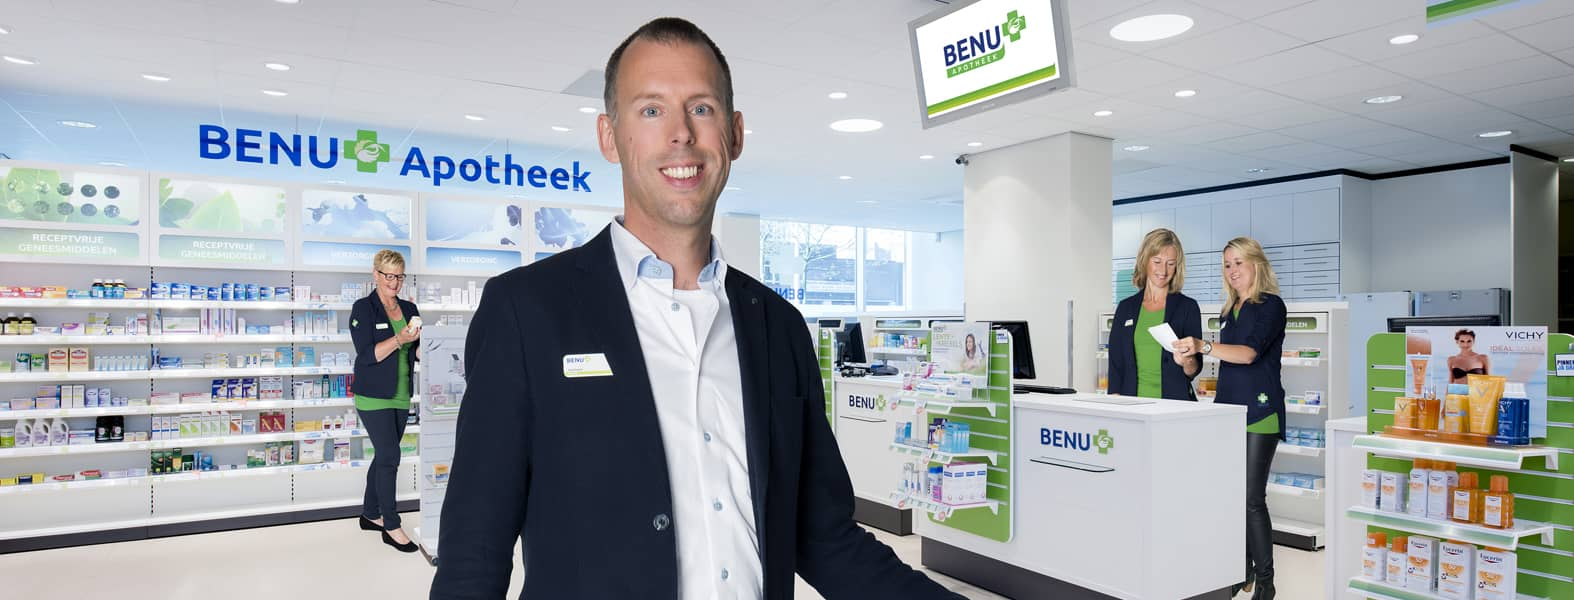 BENU Apotheek Da Costa in Putten